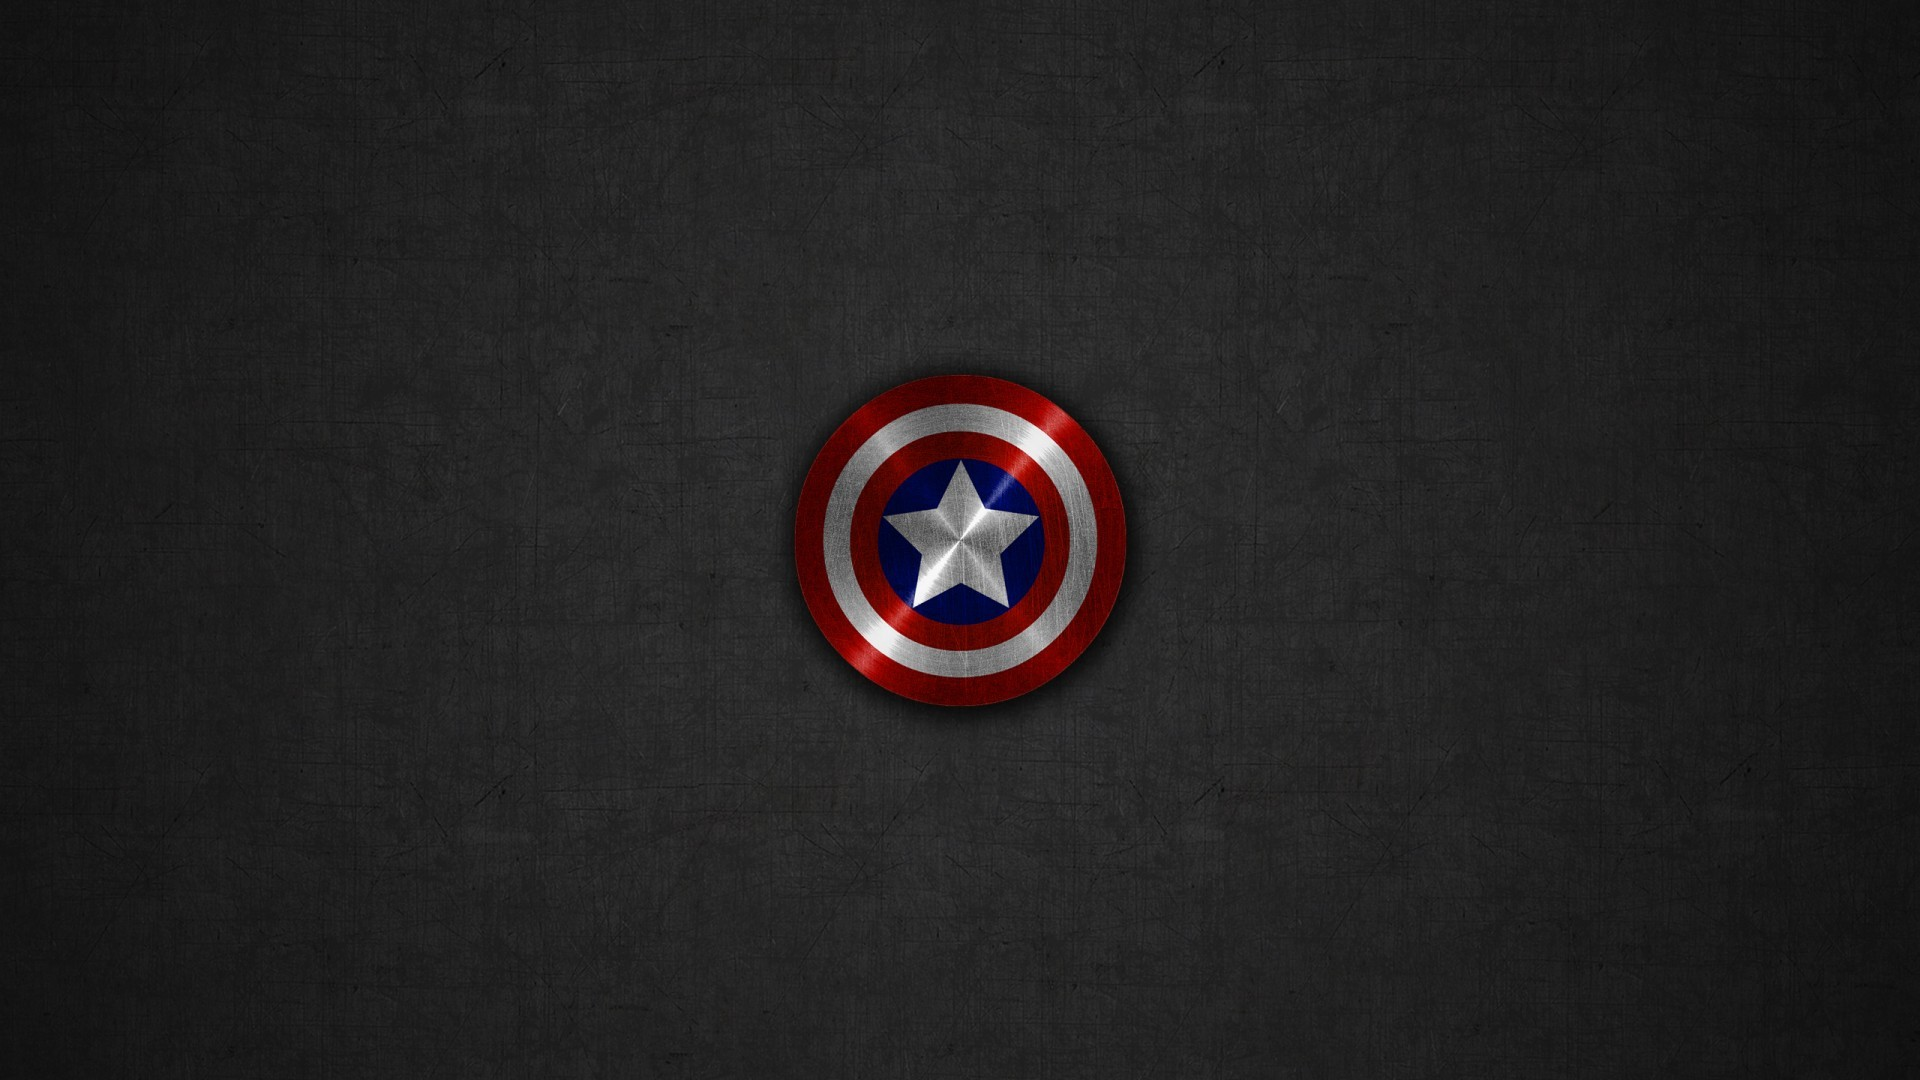 Amazing Wallpaper High Resolution Captain America - 860430-captain-america-shield-wallpapers-1920x1080-high-resolution  HD_23826.jpg